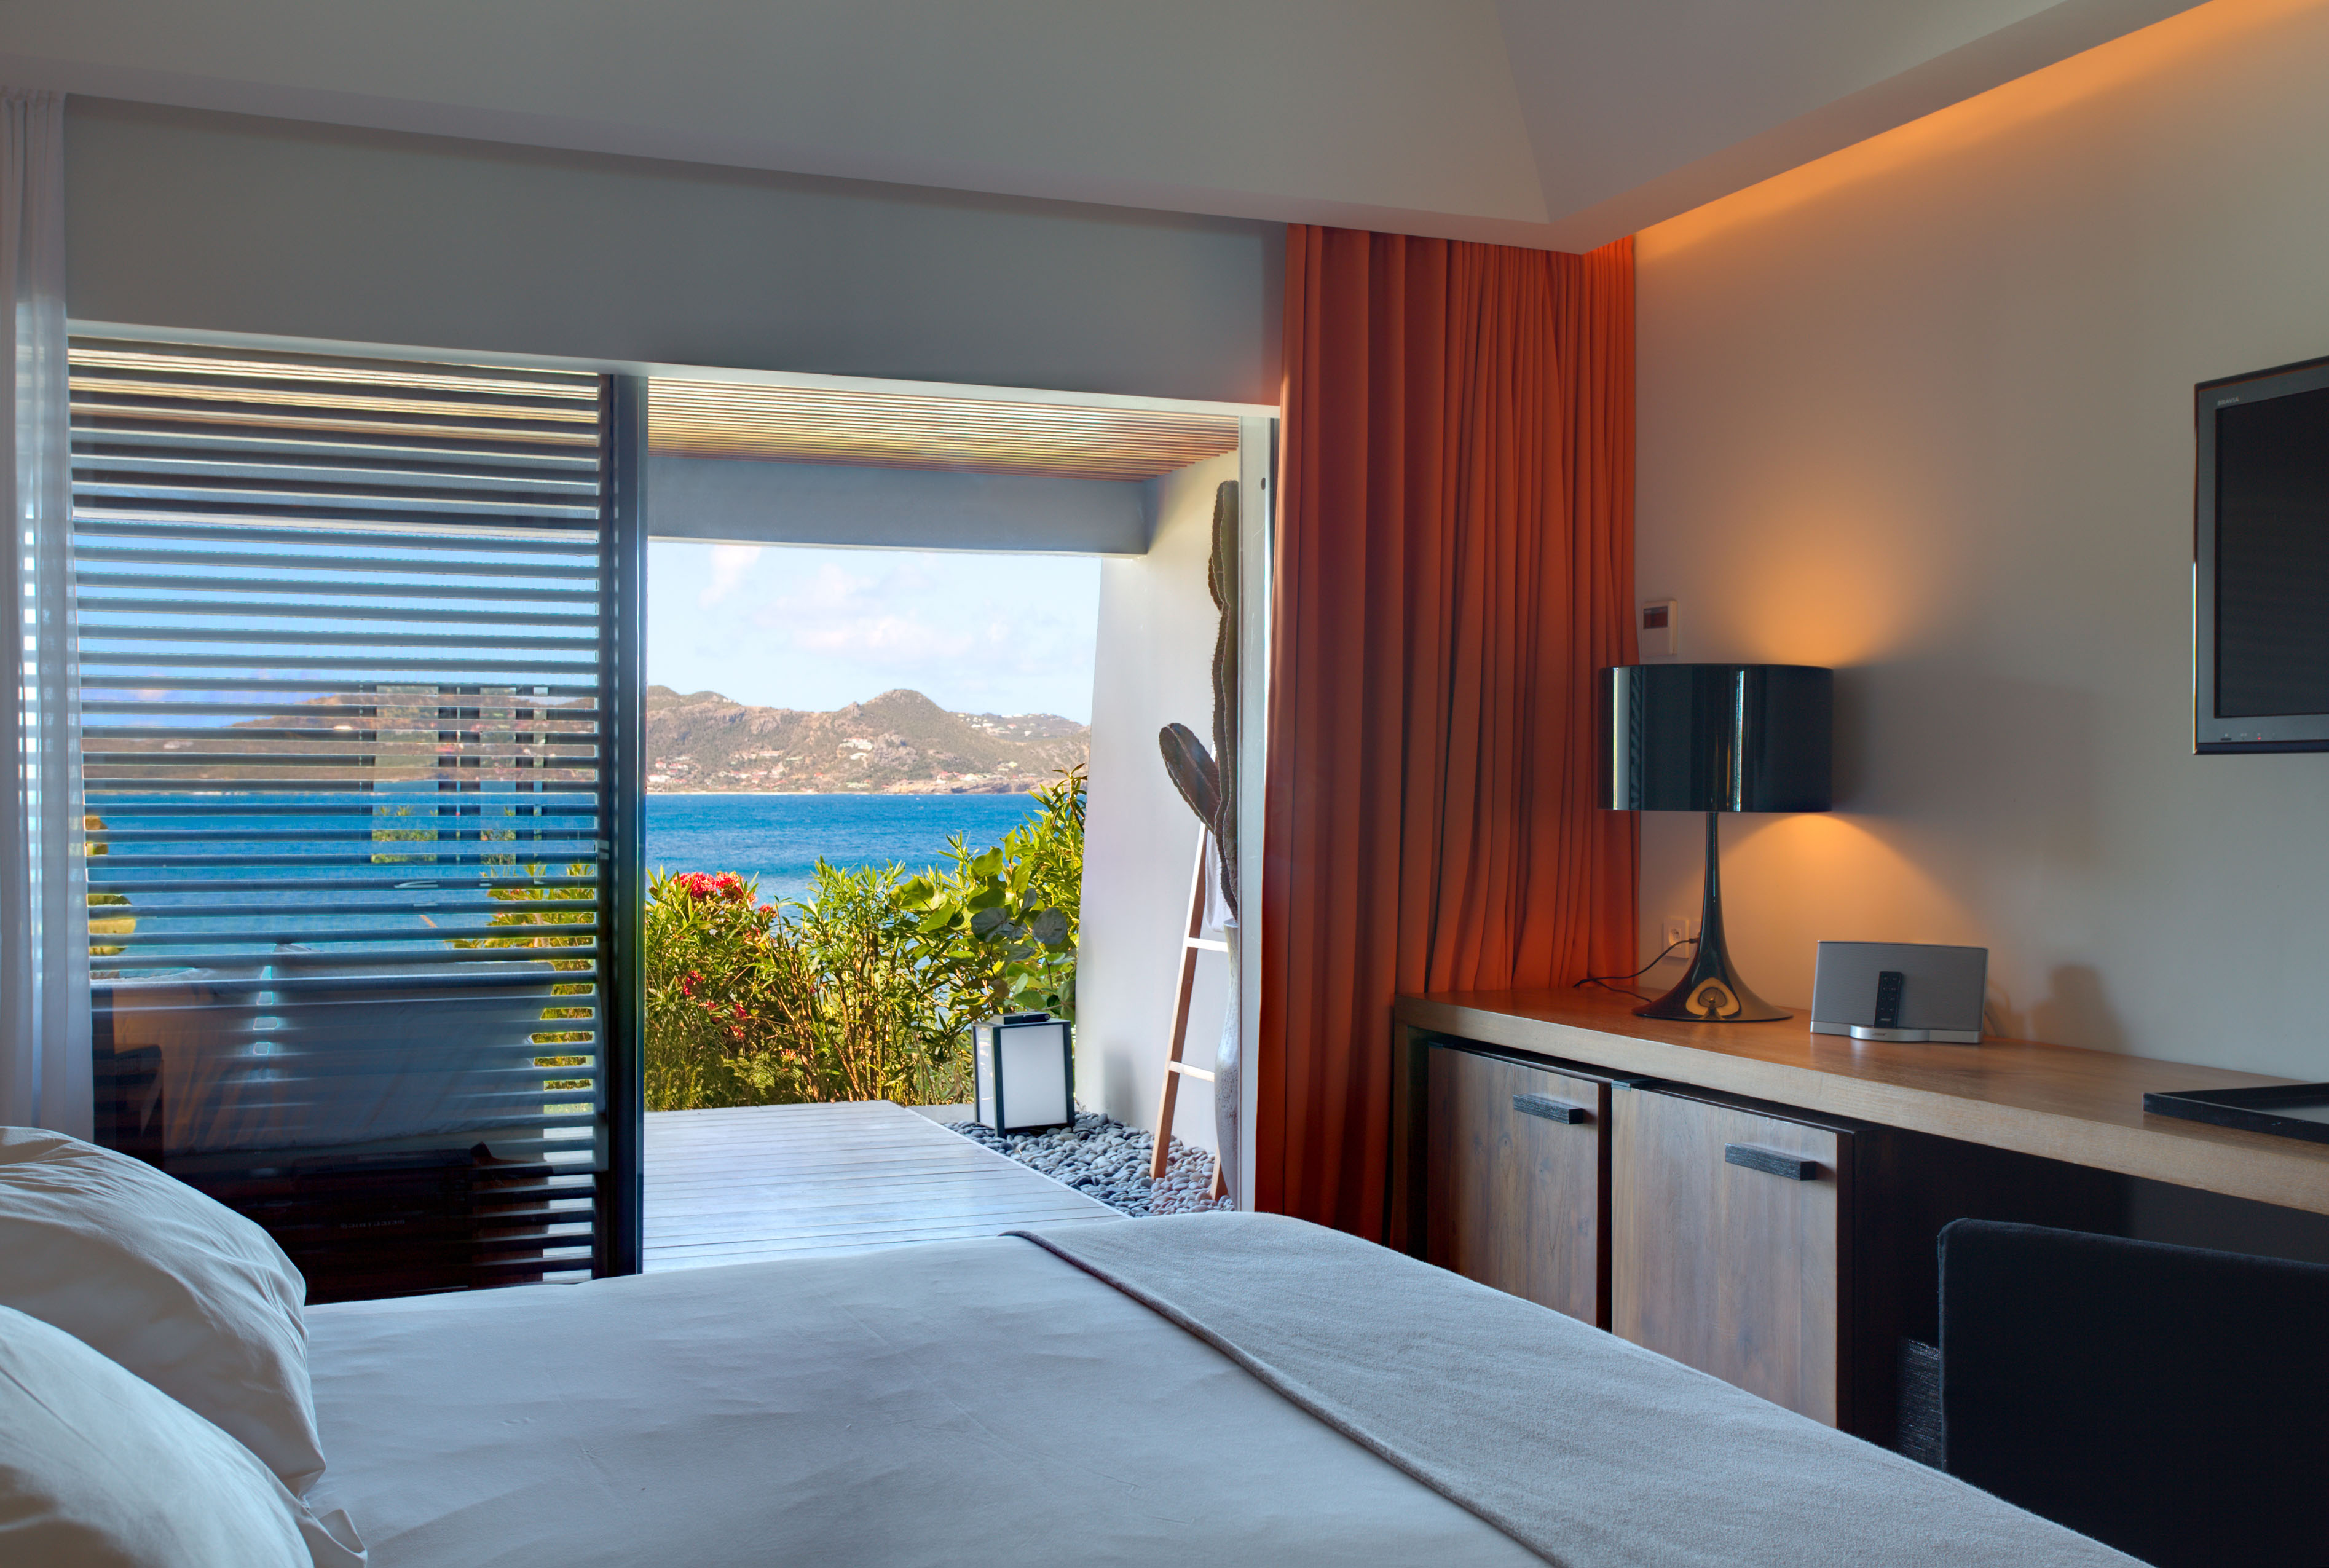 100 square feet room - Ocean Deluxe Terrace Room At The Christopher